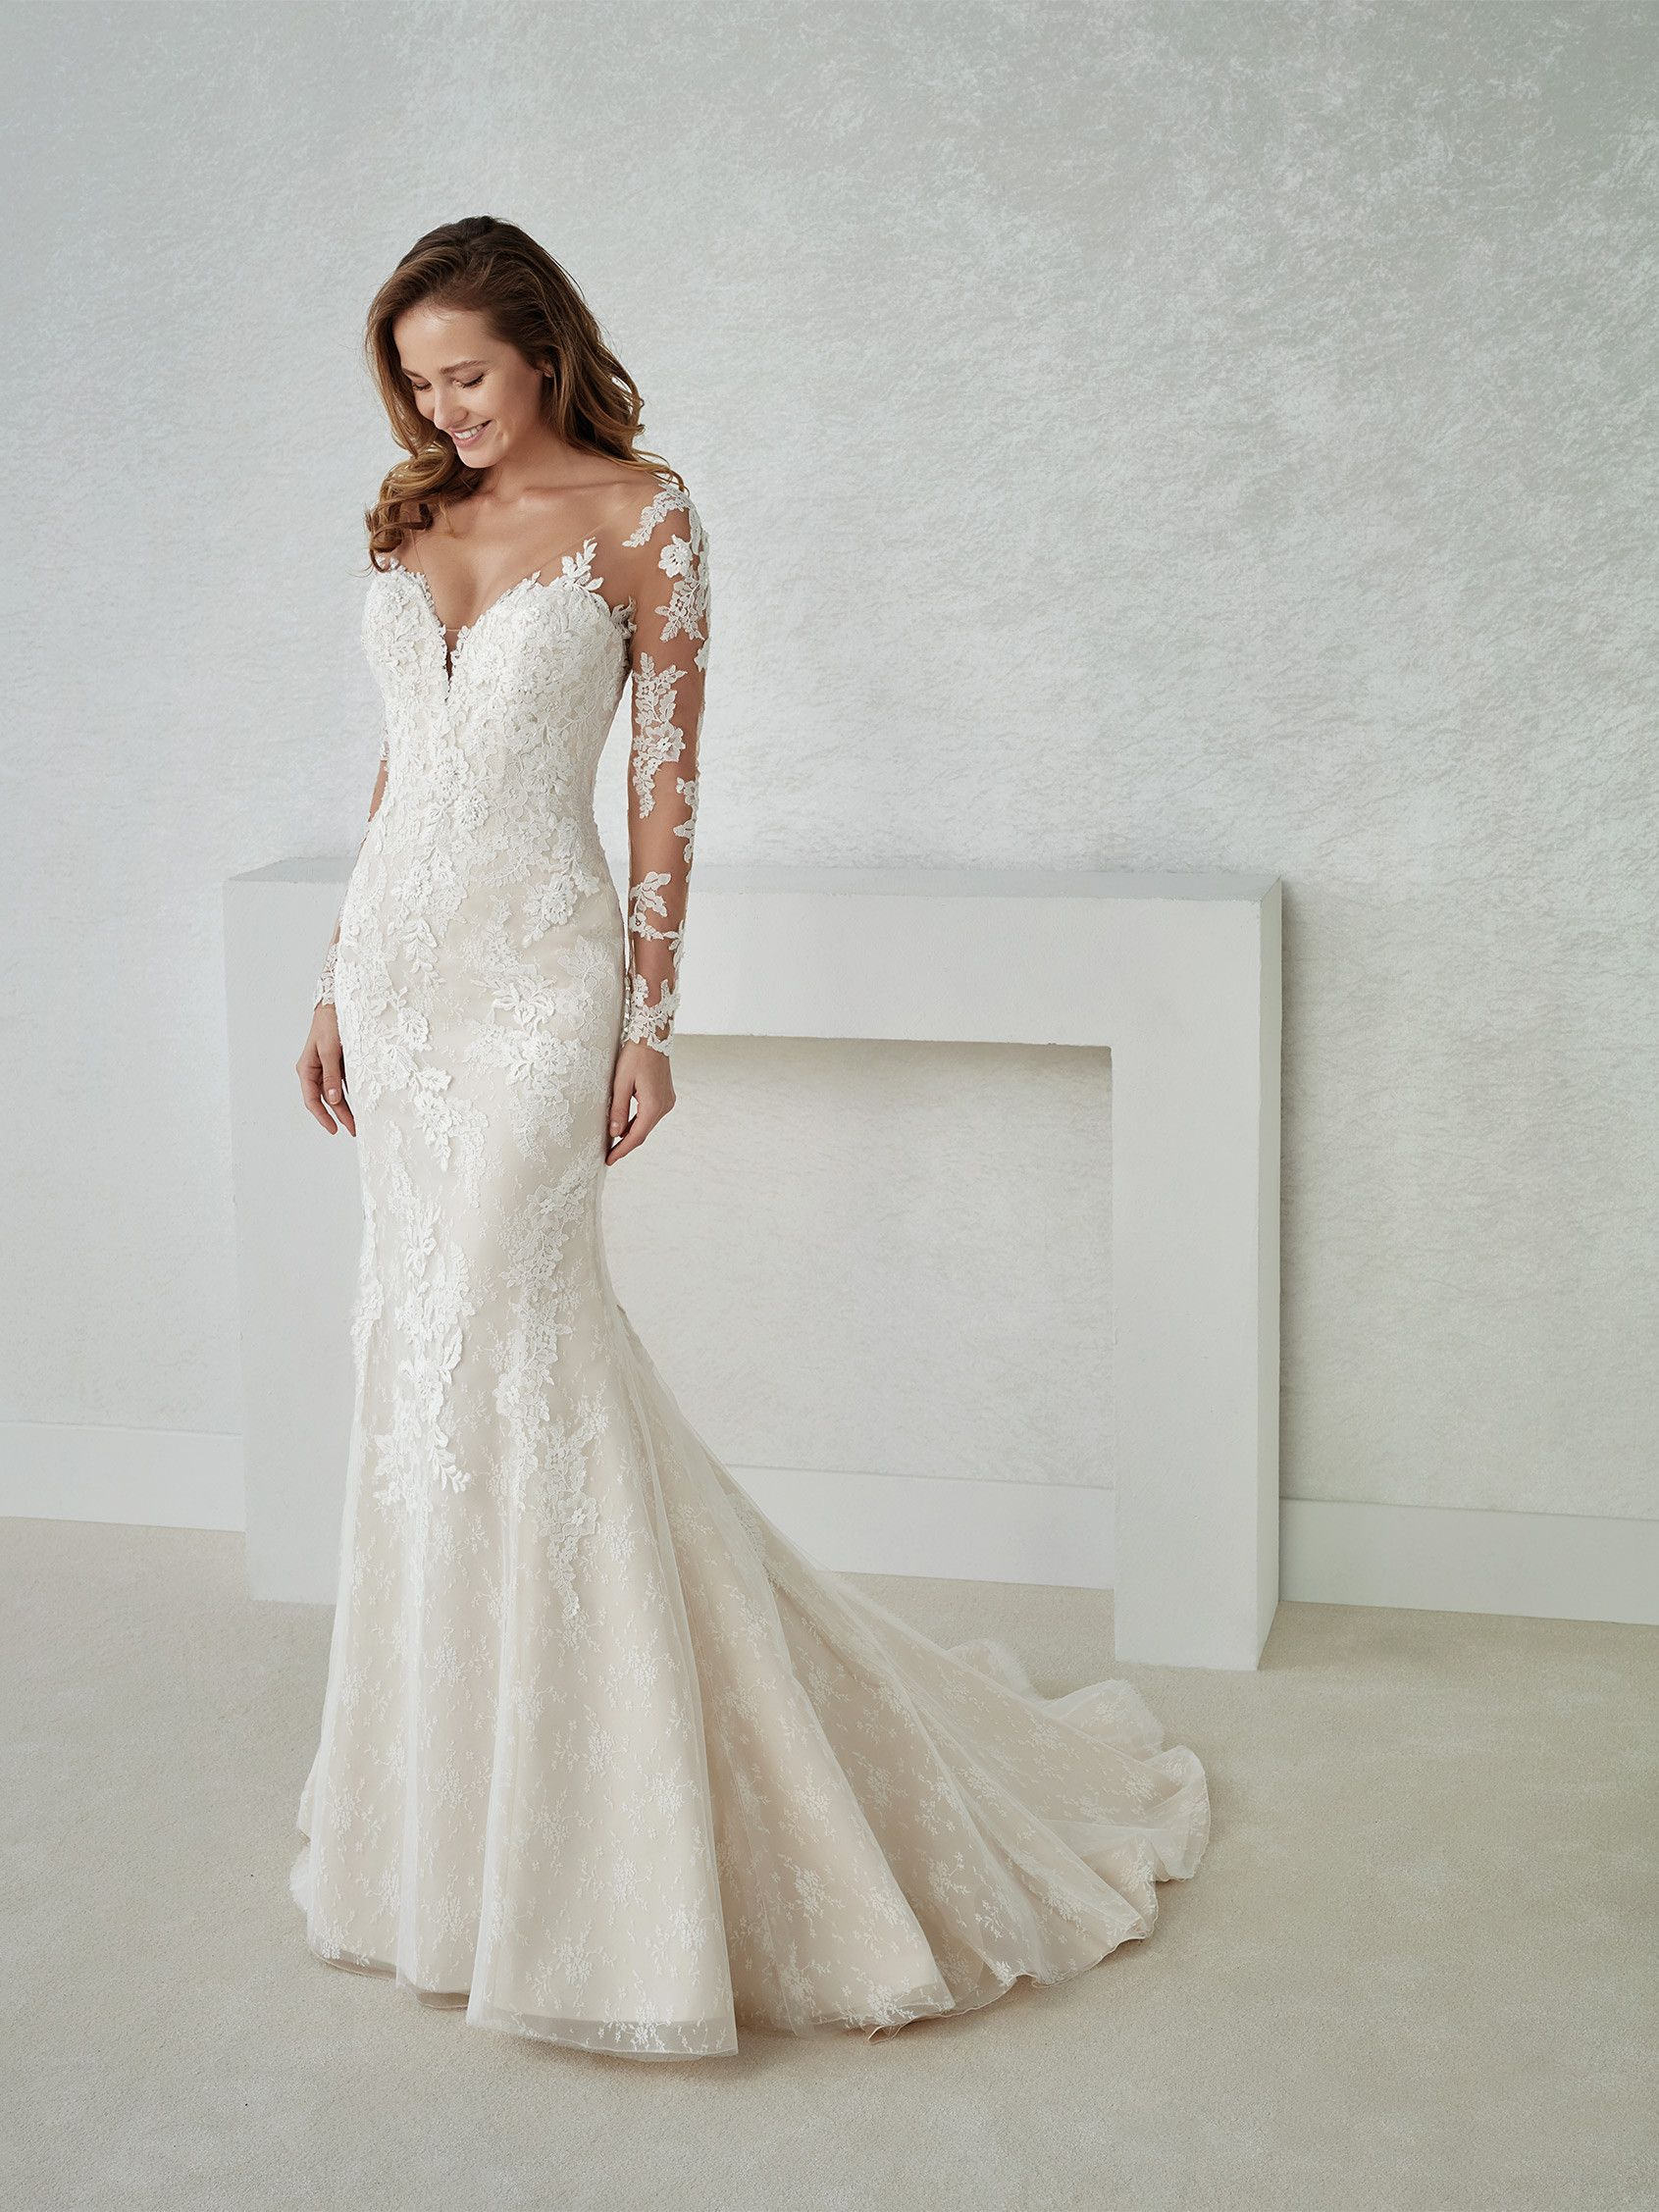 ccfec3b45241 Sensual low waist mermaid wedding dress in lace and embroidered tulle. A  design with a sweetheart illusion neckline and V-shaped back that creates a  ...